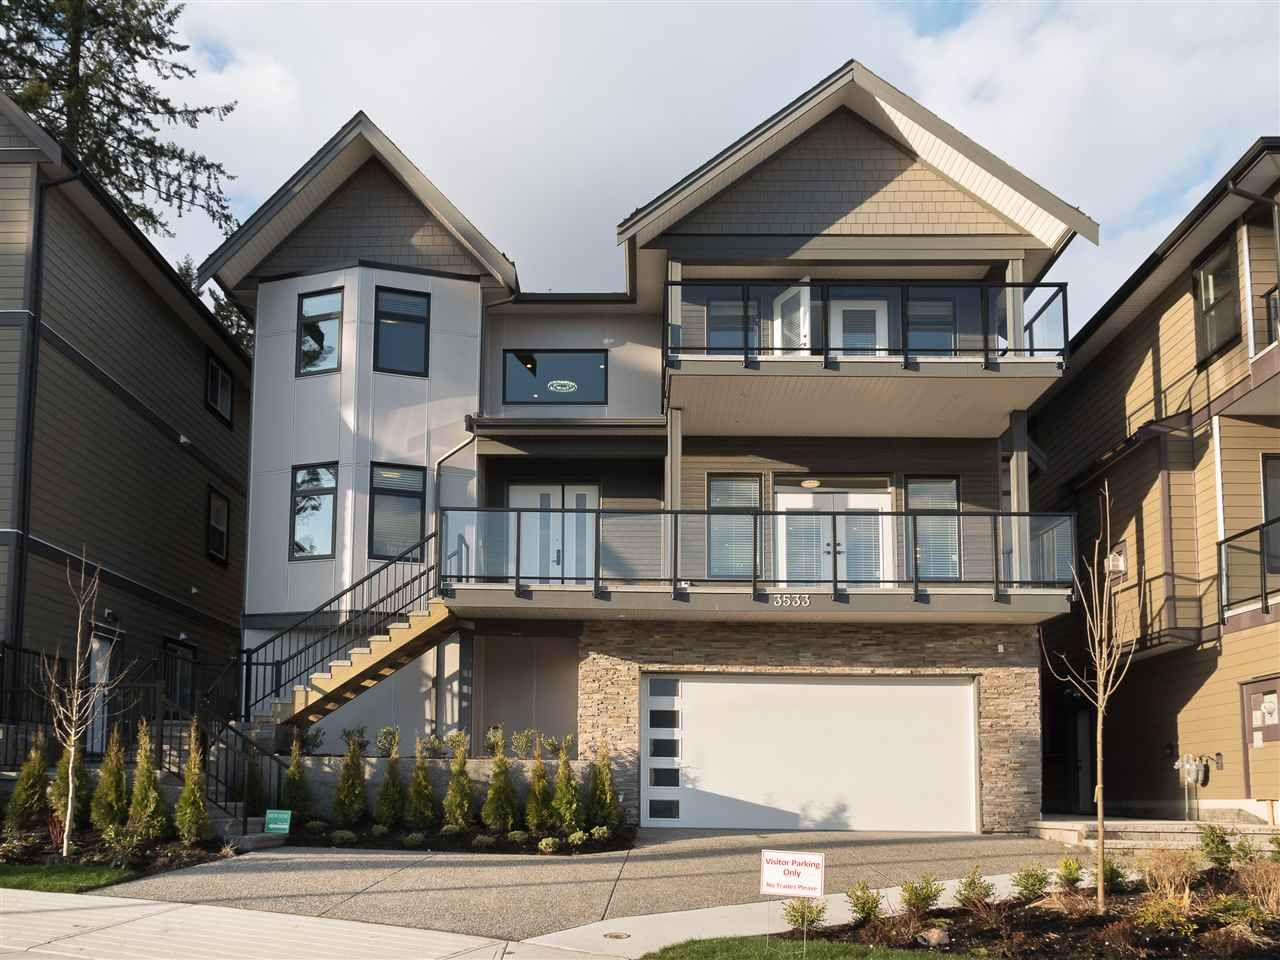 """Main Photo: 3537 ARCHWORTH Avenue in Coquitlam: Burke Mountain House for sale in """"PARTINGTON"""" : MLS®# R2222585"""